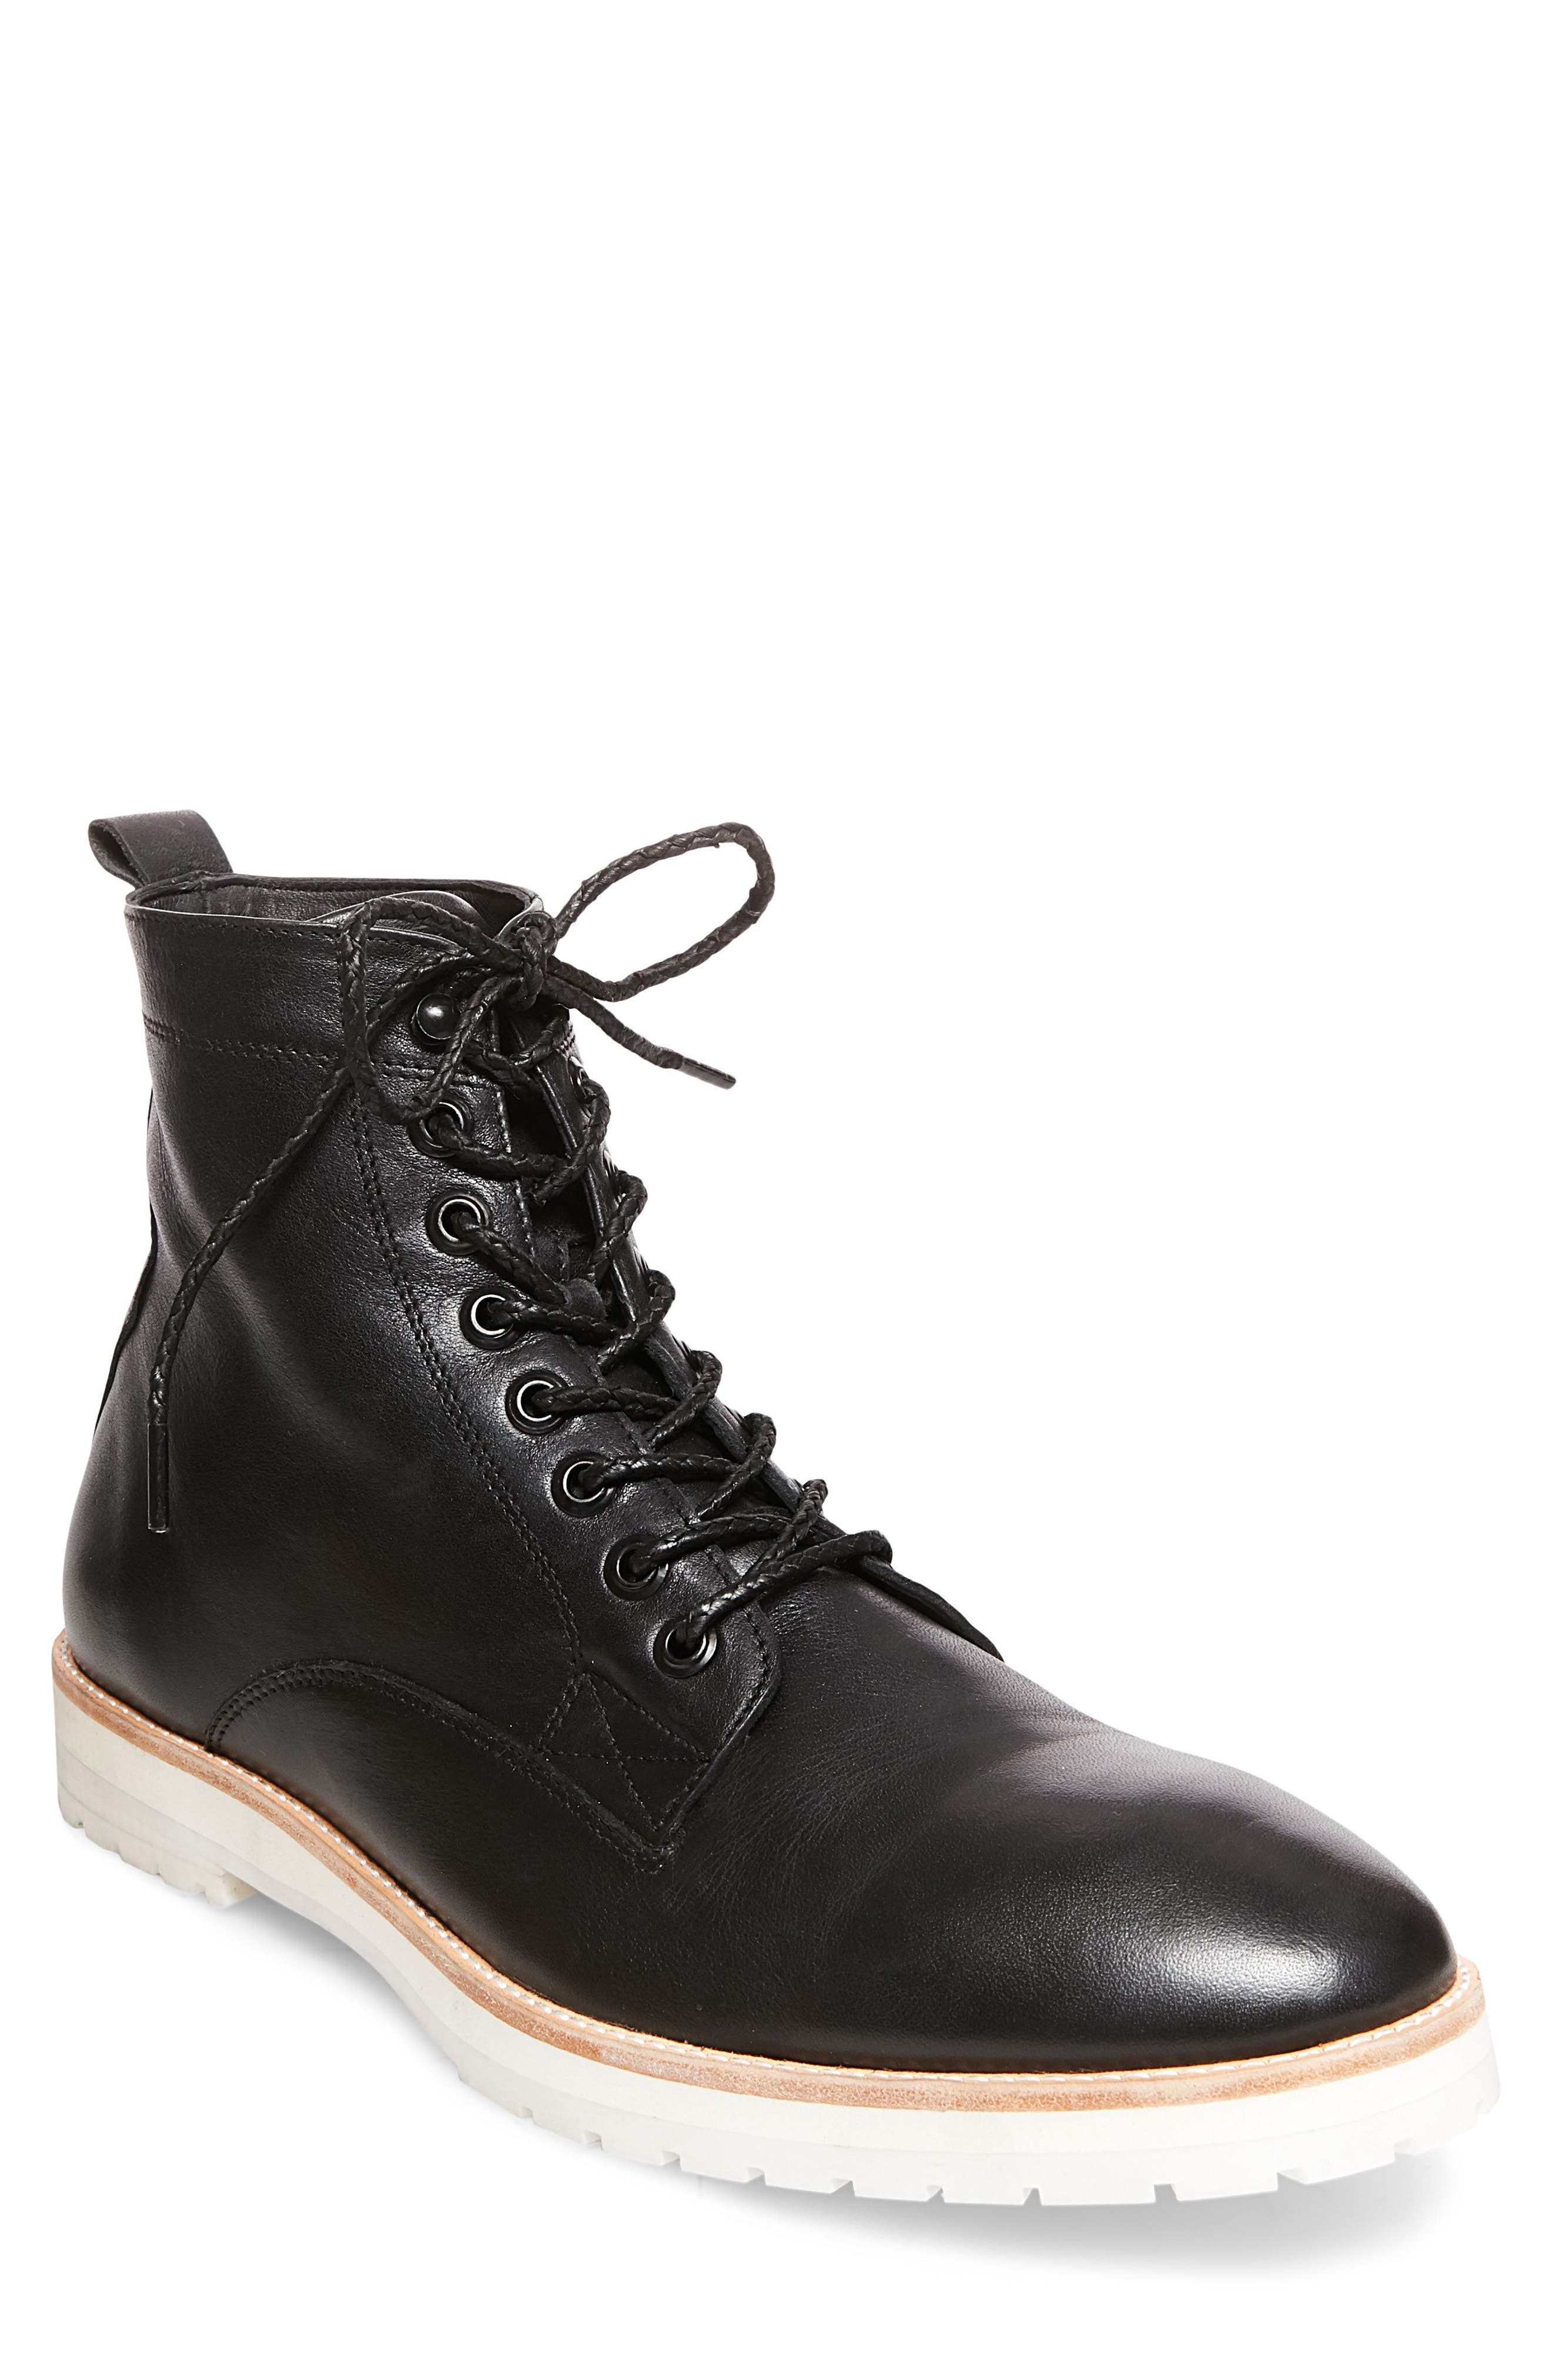 Main Image - Steve Madden x GQ Andre Plain Toe Boot (Men)